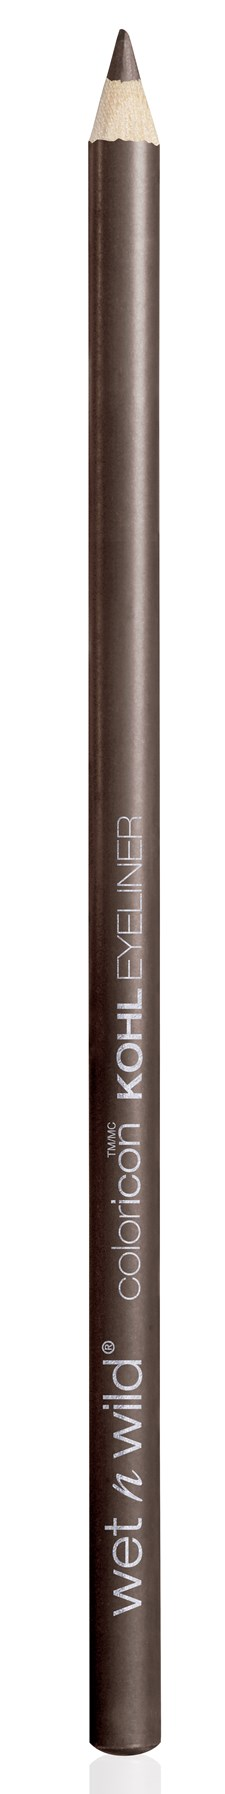 ColorIcon Kohl Eyeliner Pencil - Pretty in Mink